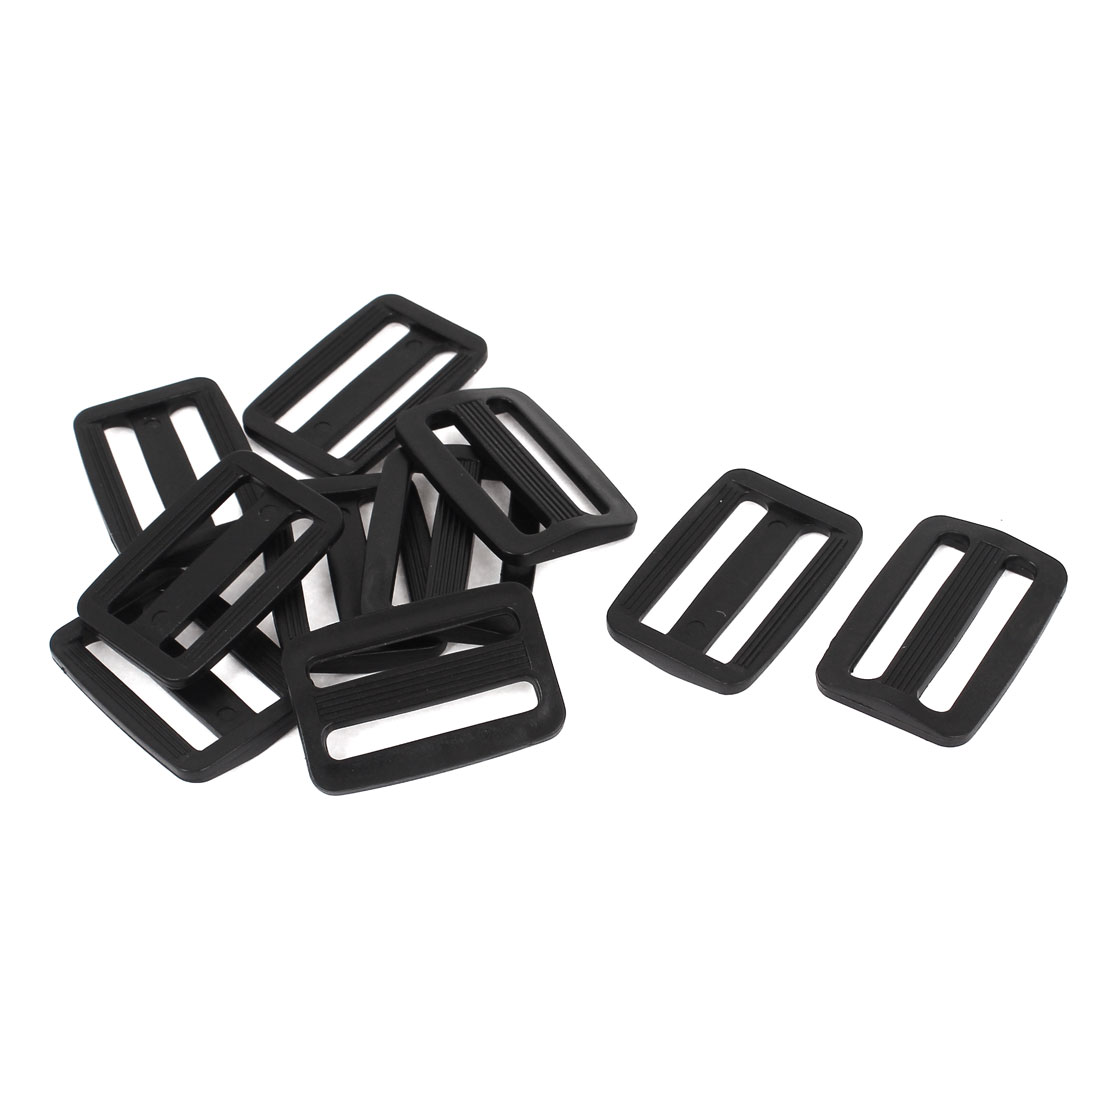 10 Pcs Black Hard Plastic Slide Rectangle Buckle Luggage Bag Replacement 3.2CM